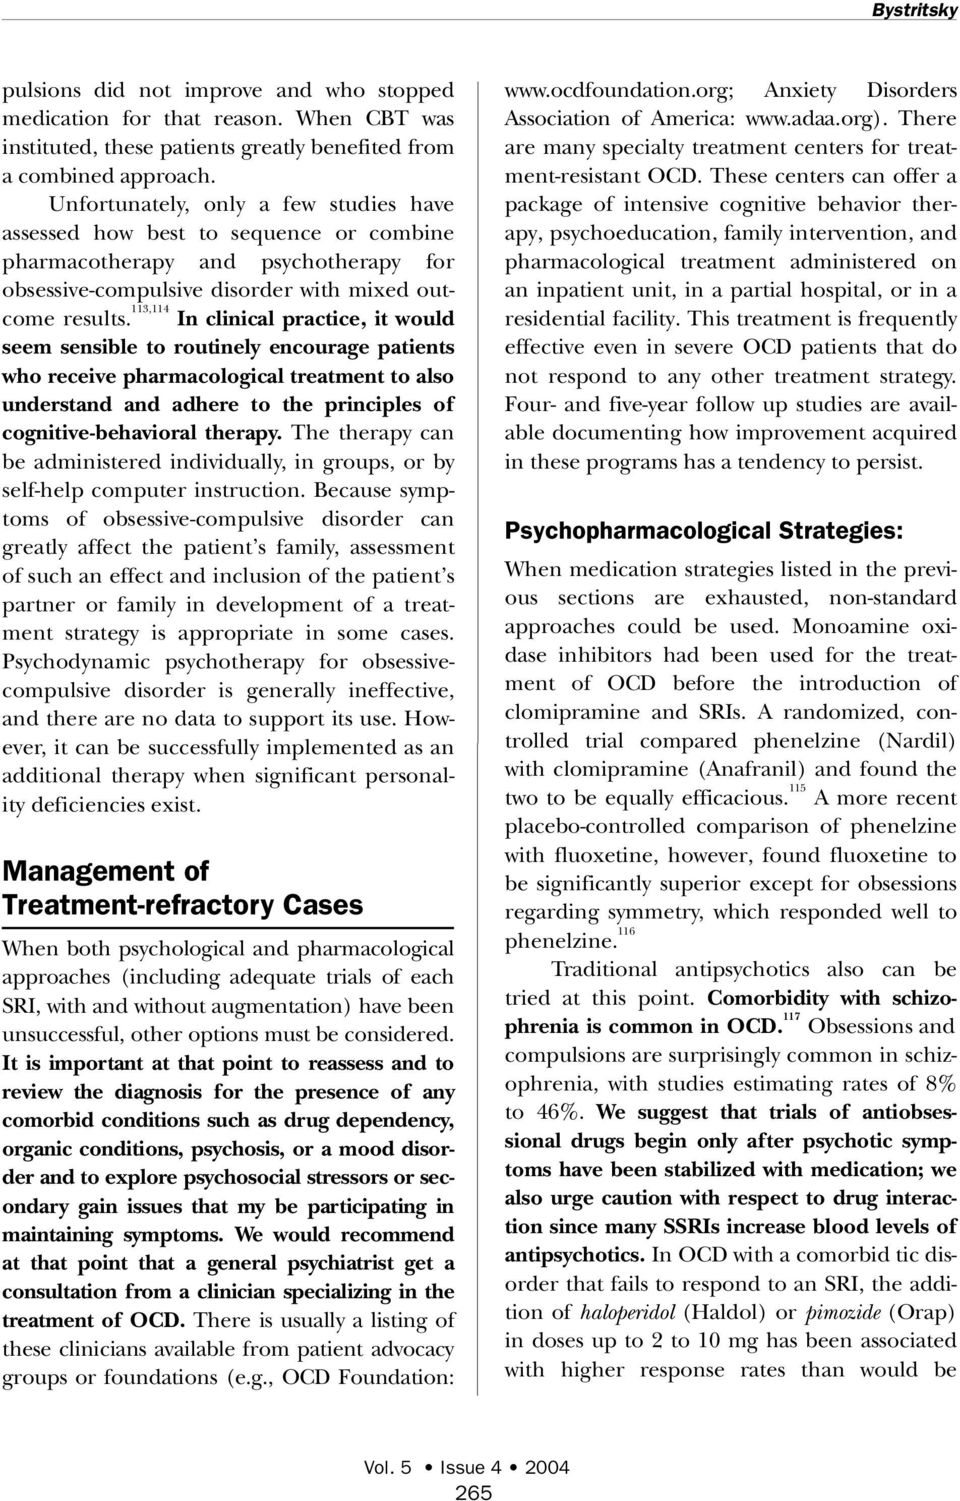 1 1 3, 1 1 4 In clinical practice, it would seem sensible to routinely encourage patients who receive pharmacological treatment to also understand and adhere to the principles of cognitive-behavioral